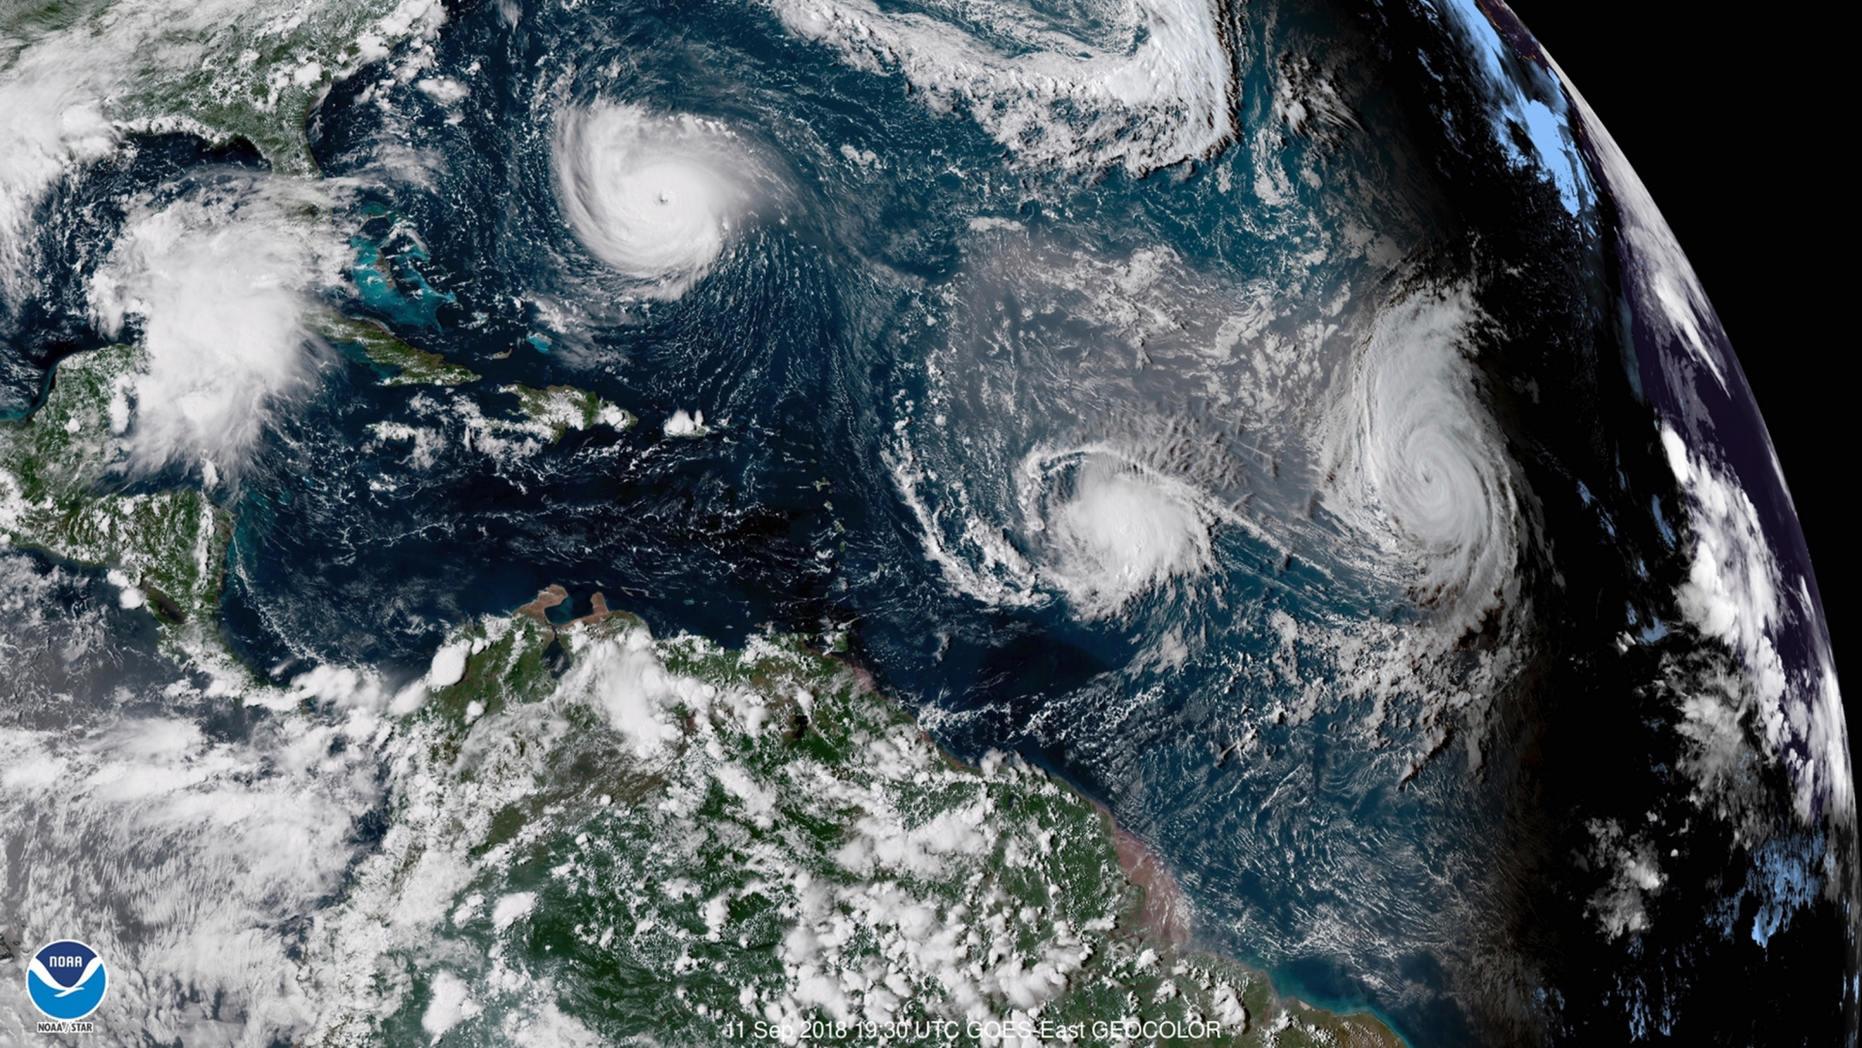 CORRECTS DATE TO SEPT. 11, NOT 1 - This enhanced satellite image made available by NOAA shows Tropical Storm Florence, upper left, in the Atlantic Ocean on Tuesday, Sept. 11, 2018 at 3:30 p.m. EDT. At center is Tropical Storm Isaac and at right is Hurricane Helene. (NOAA via AP)